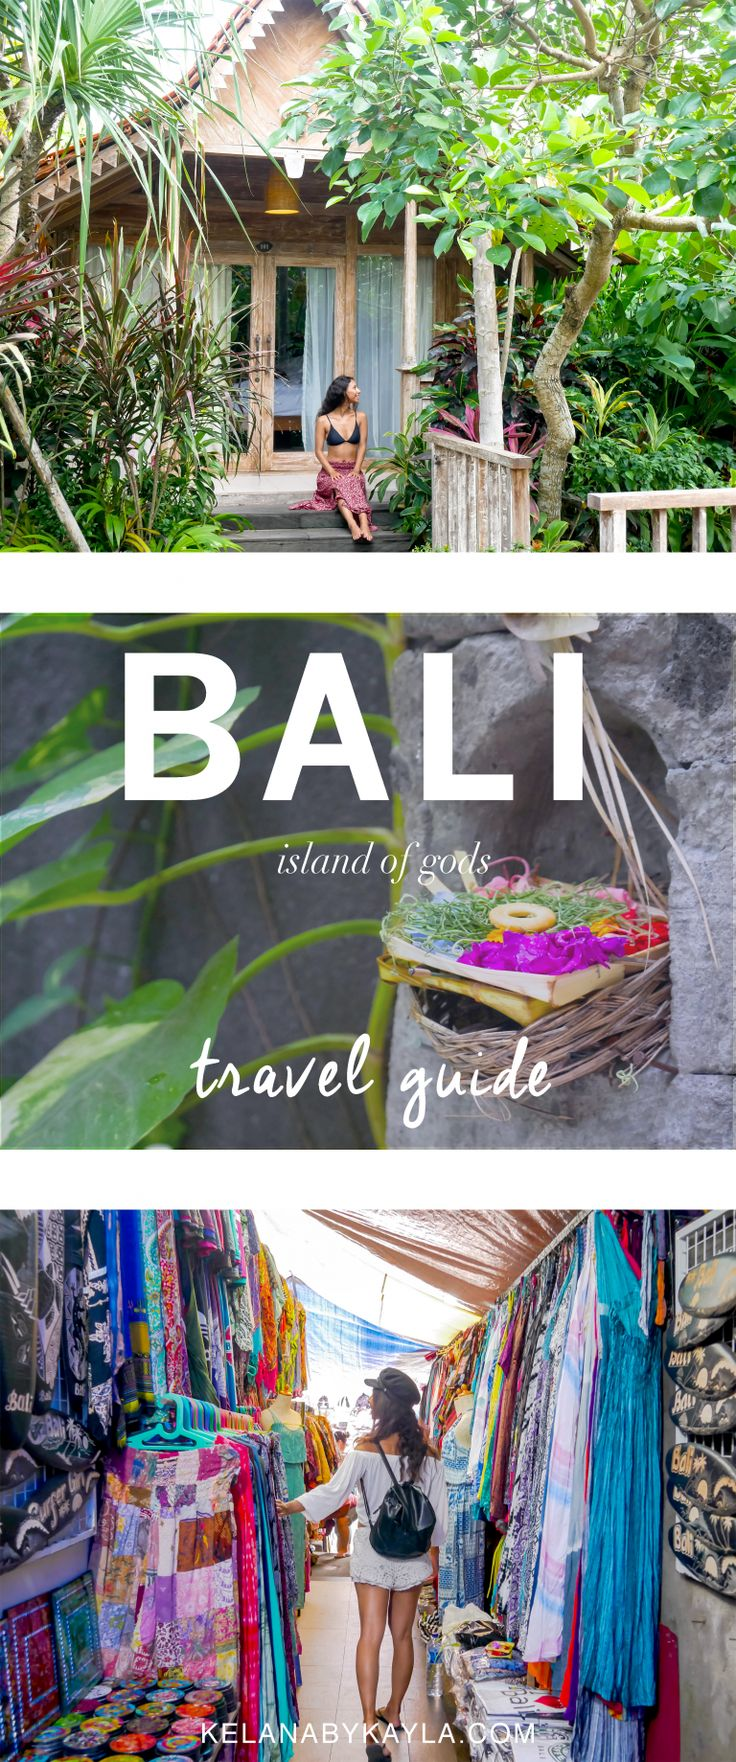 To some Bali is solely a vacation destination, but it has some insanely rich culture waiting to be explored! After many trips, here's our Bali Travel Guide. Aergo Wanderlust Approved!